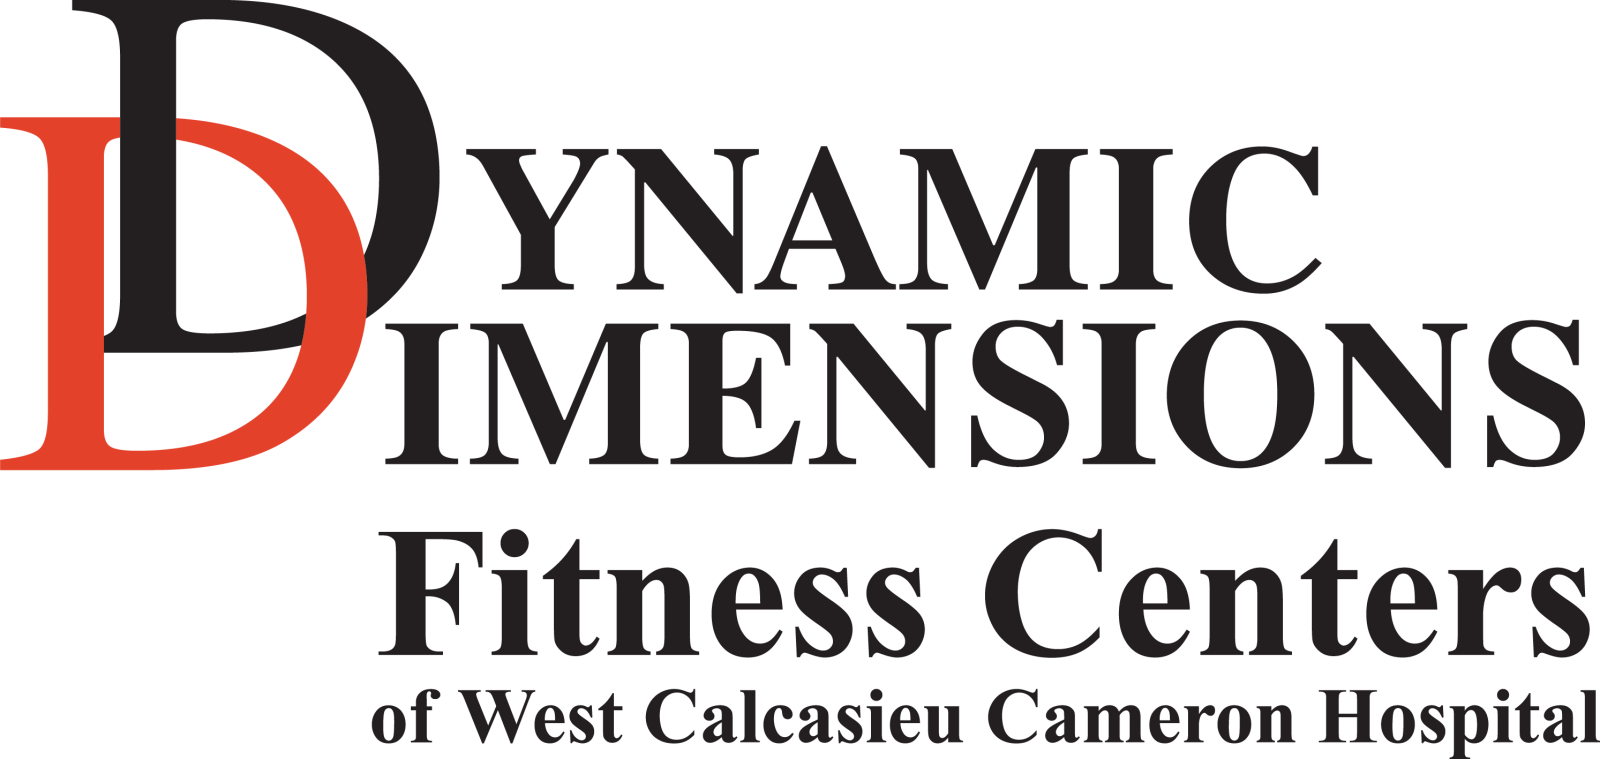 Dynamic Dimensions Fitness Centers of West Calcasieu Cameron Hospital